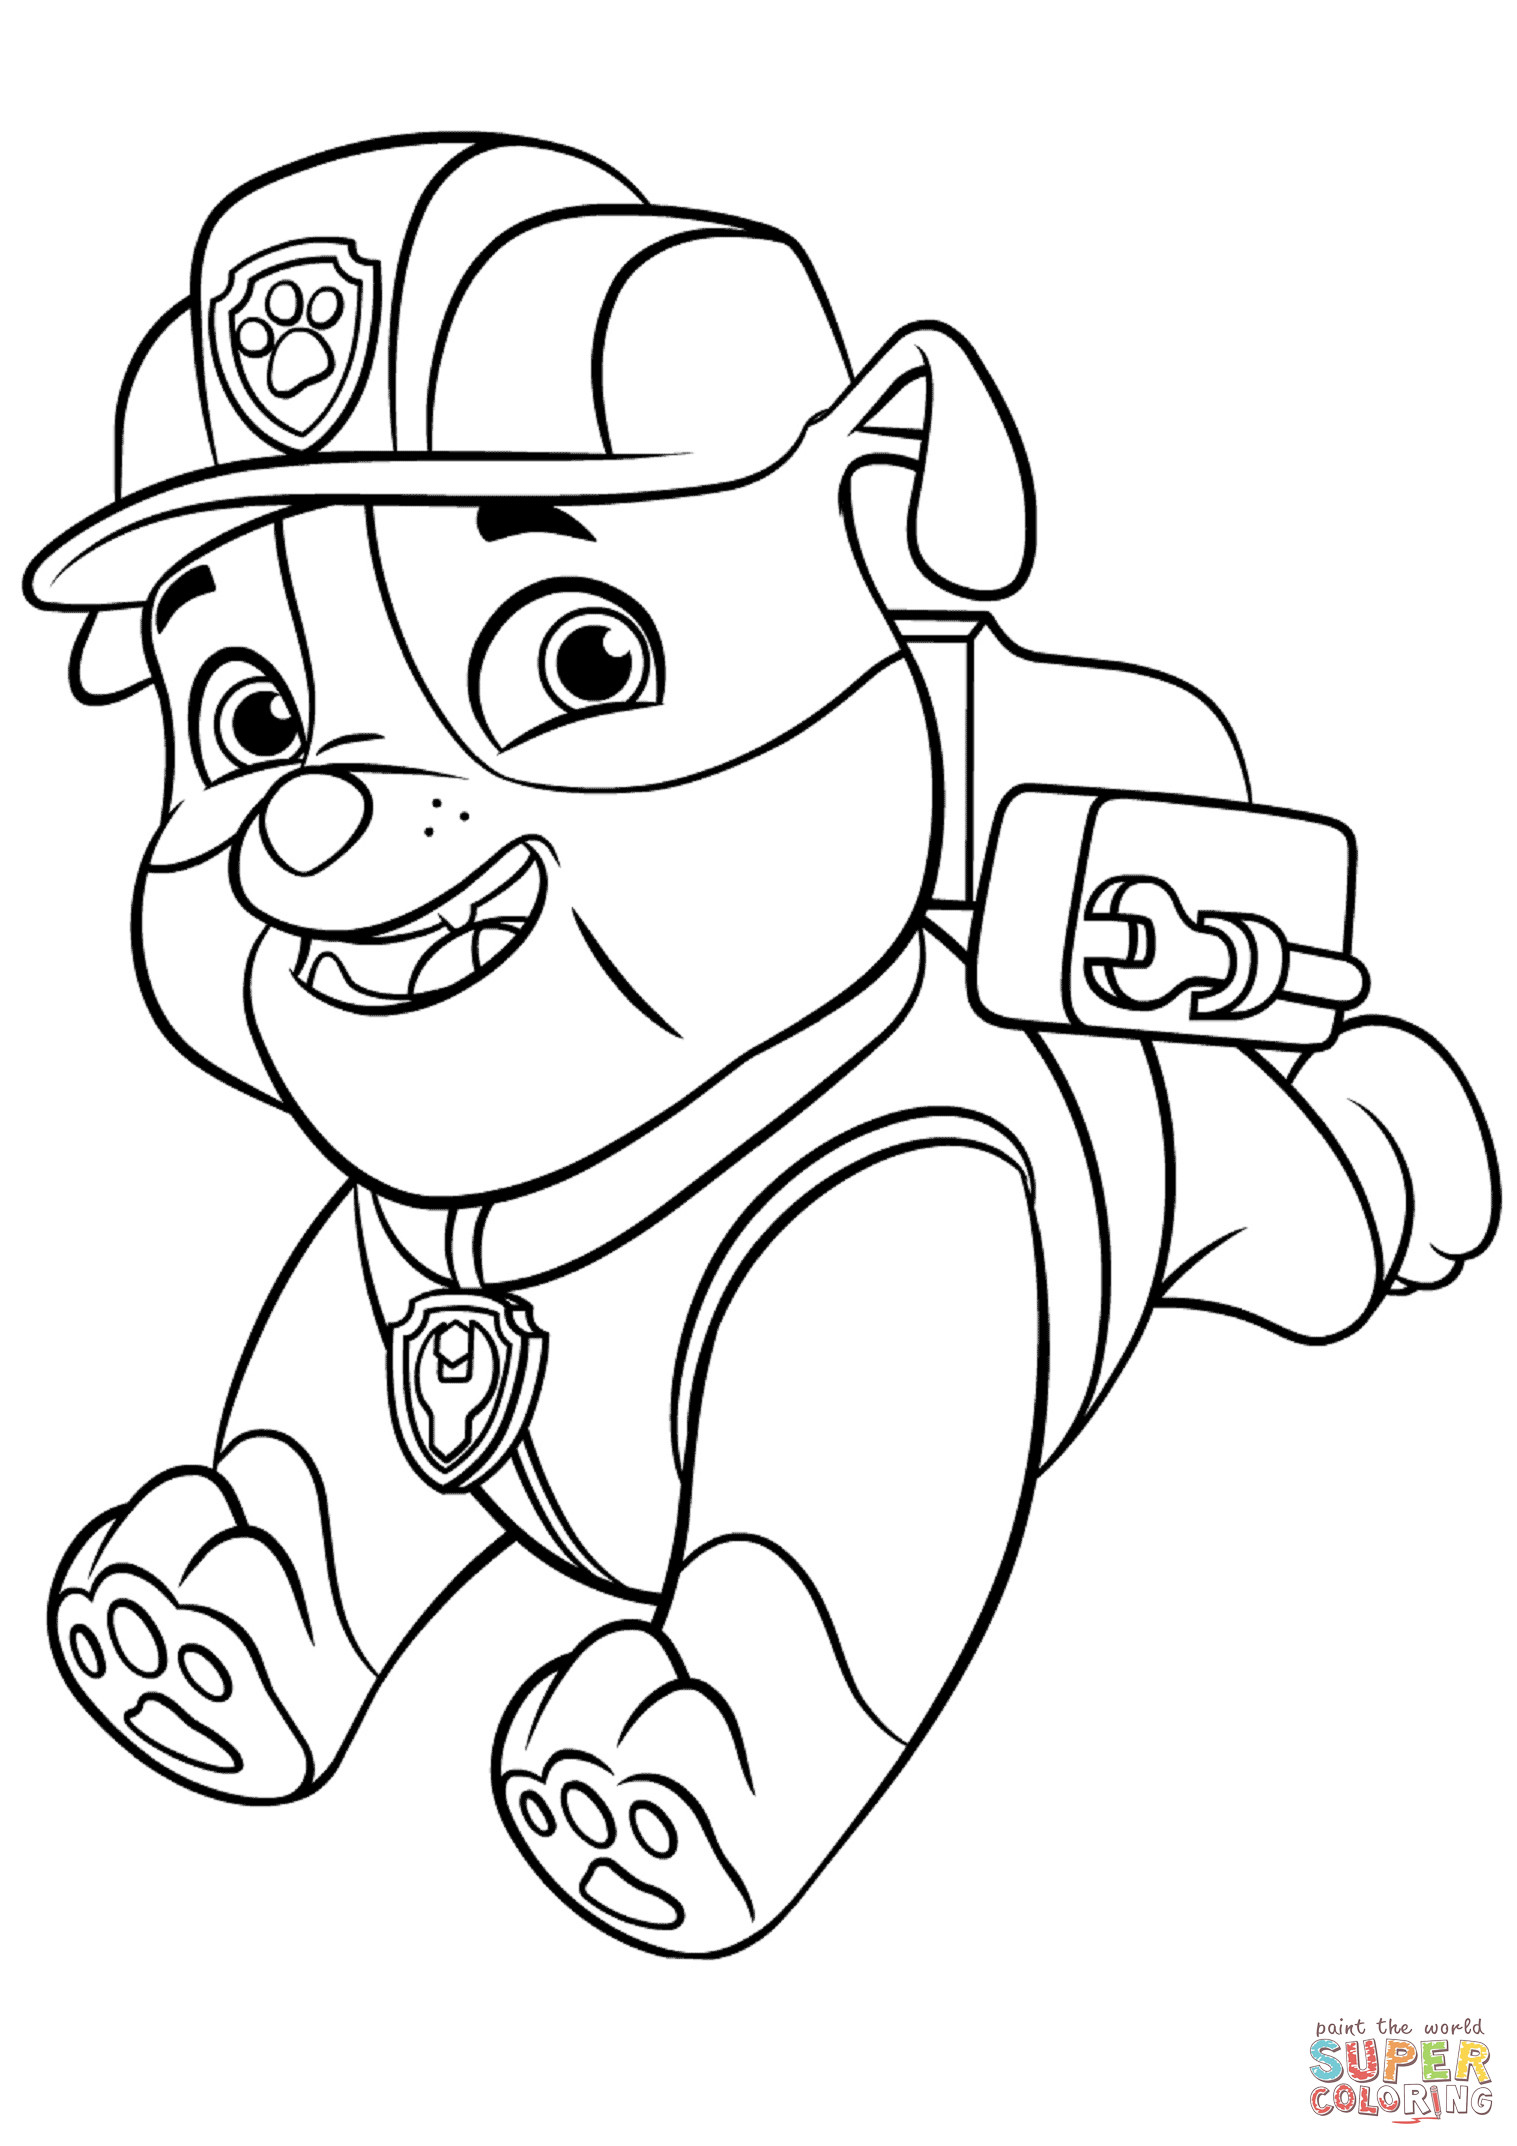 Best ideas about Paw Patrol Free Coloring Sheets . Save or Pin Paw Patrol Rubble with Backpack coloring page Now.